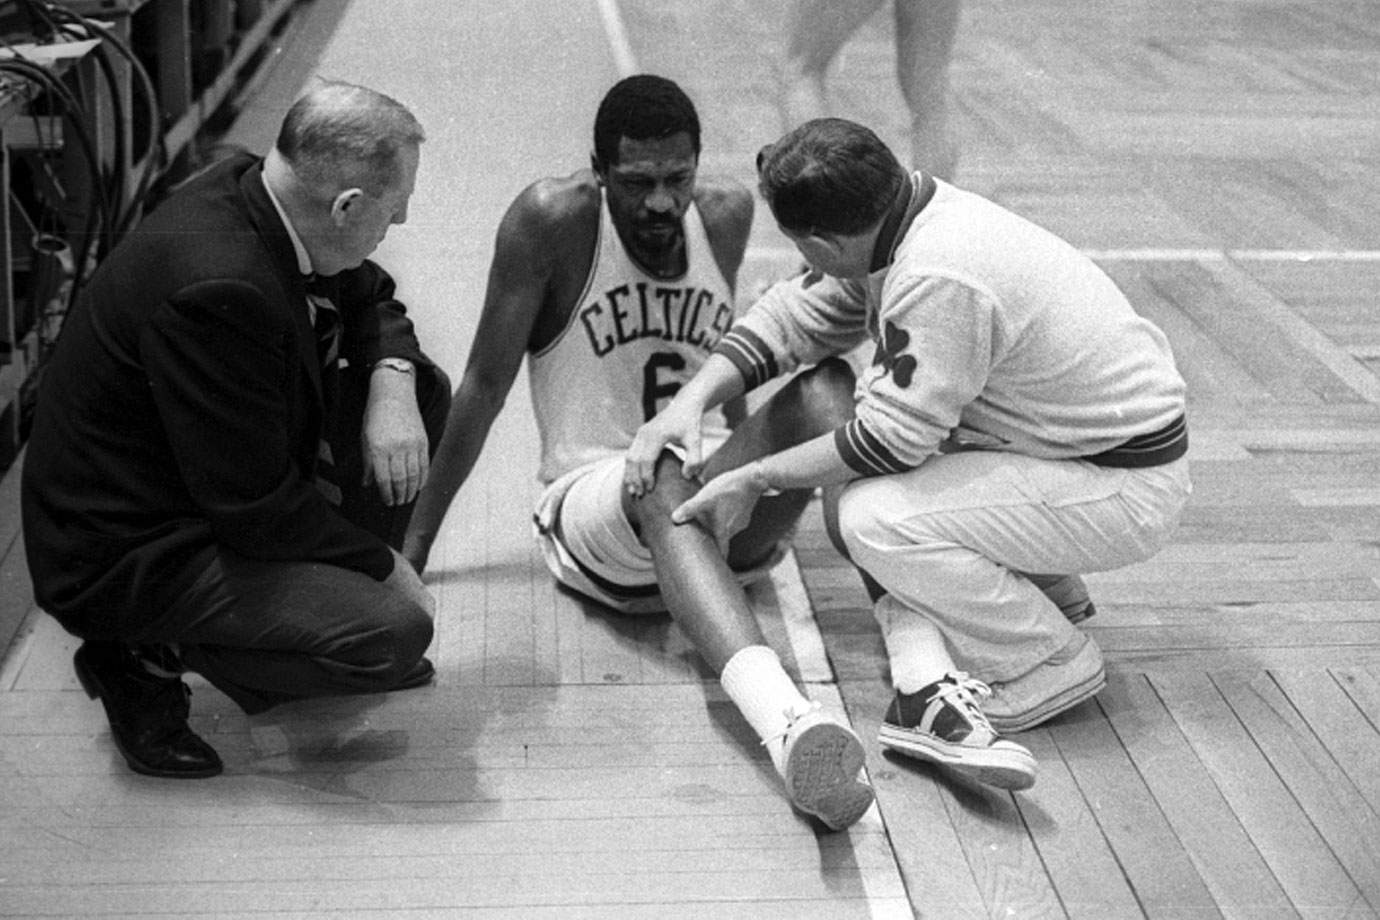 A trainer checks on the injured center during a game.